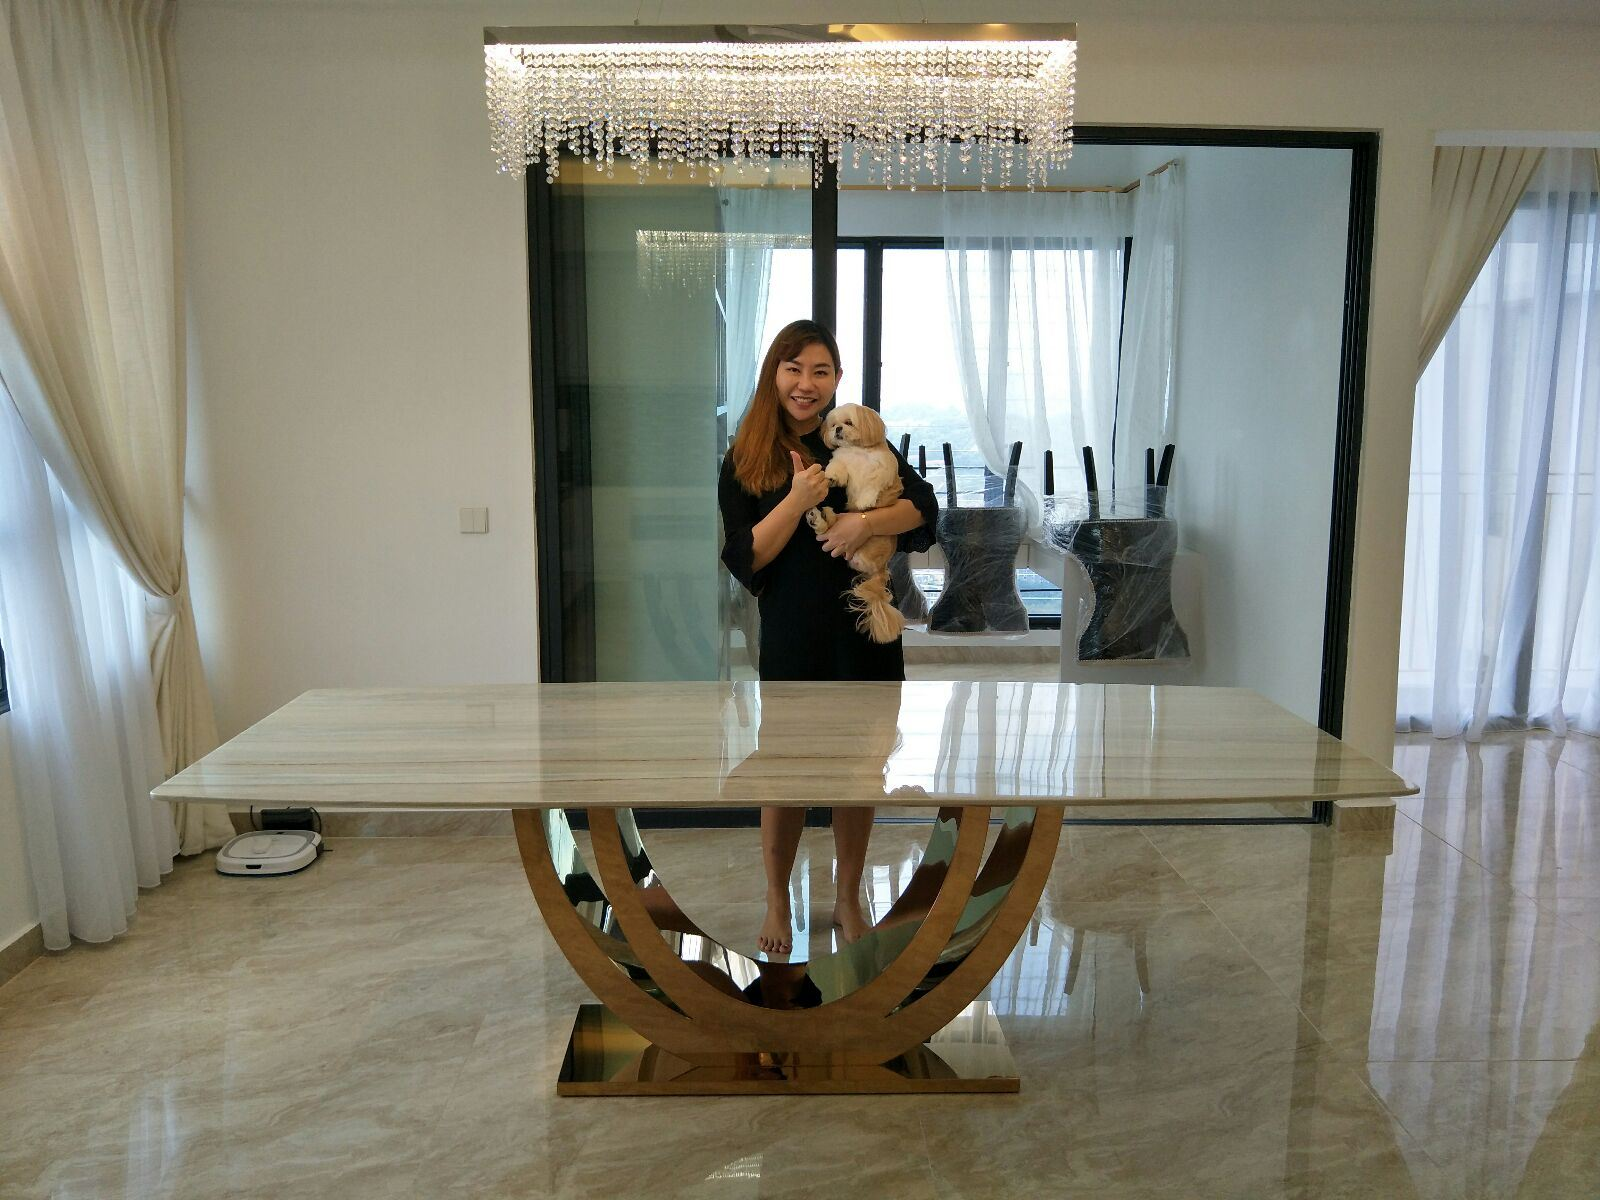 Marble Dining Table From Italy - Palisandro Marble